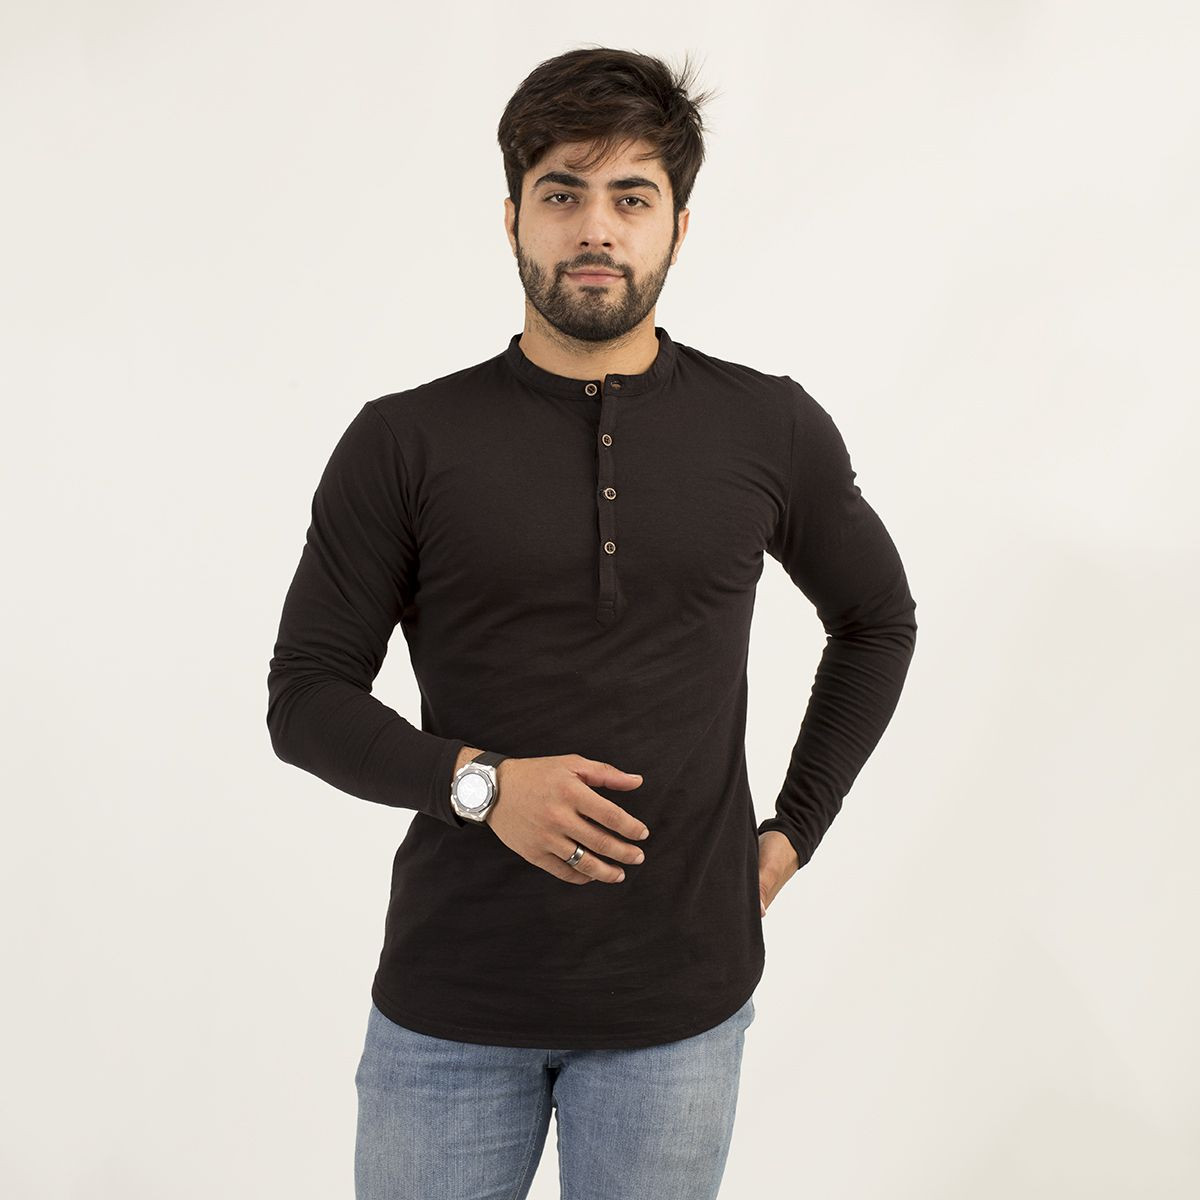 Full sleeves Black Plain Kurti Tshirt